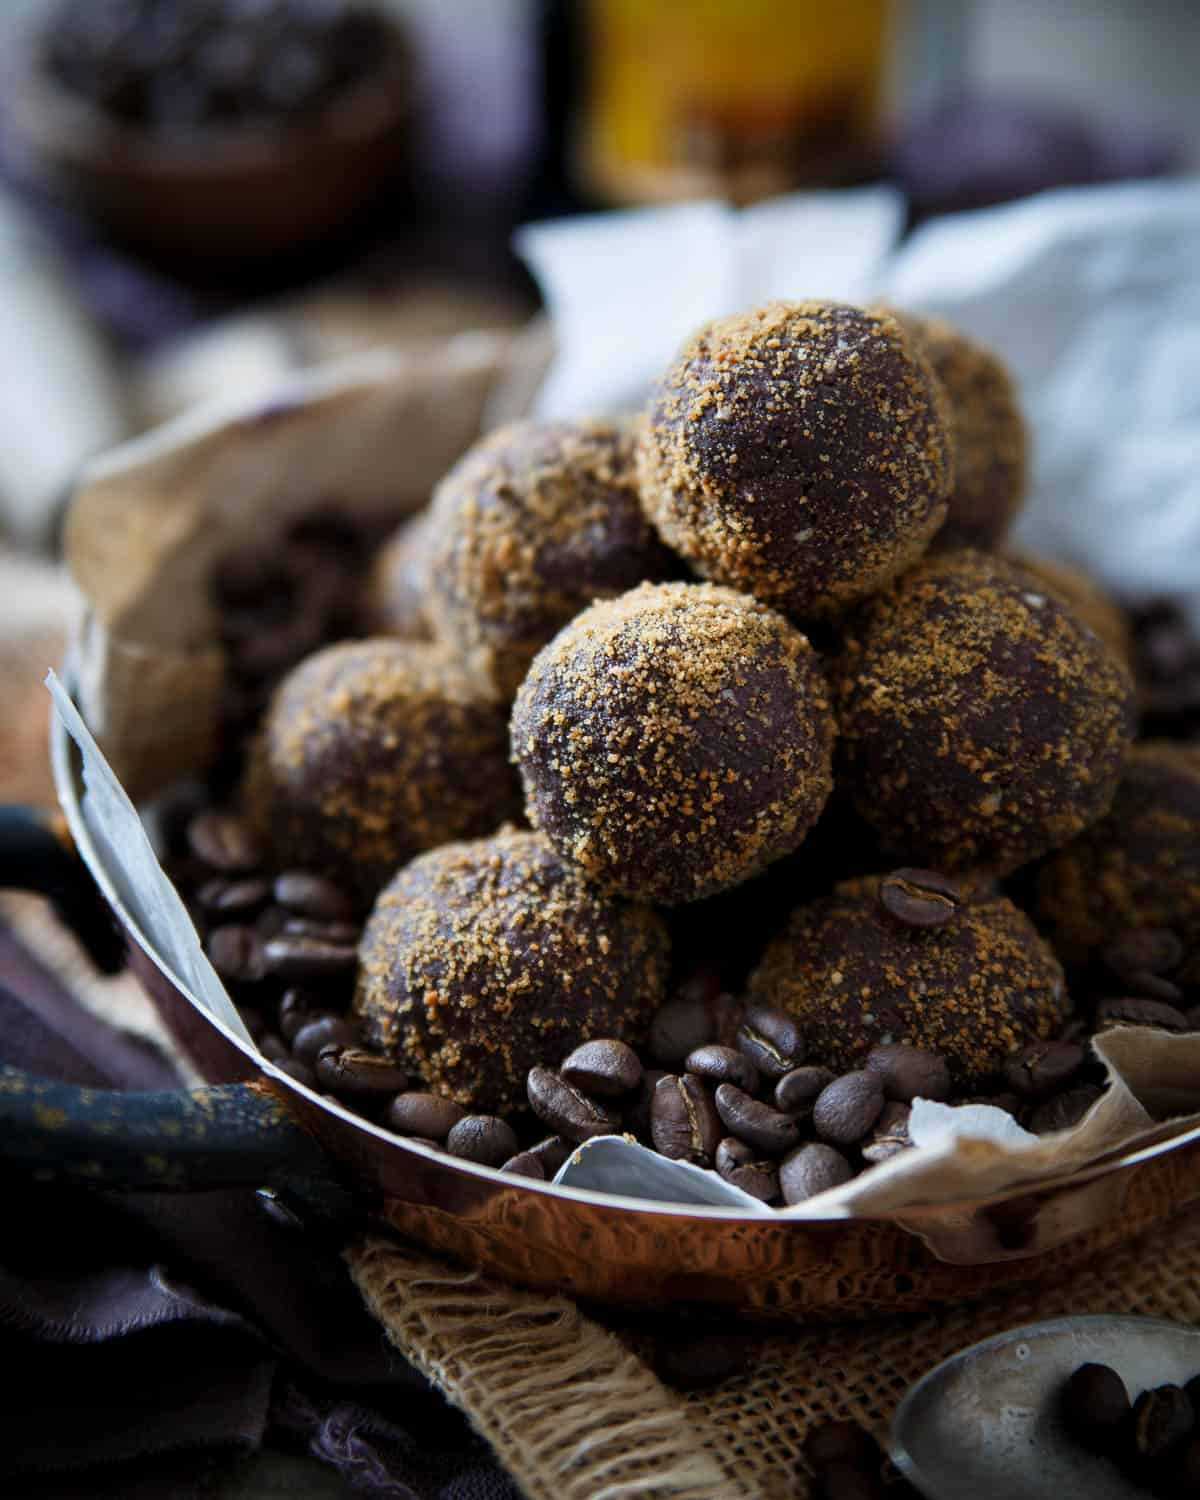 These Dark Chocolate Kahlua Coffee Bites are like a decadent truffle but filled with better for you ingredients.